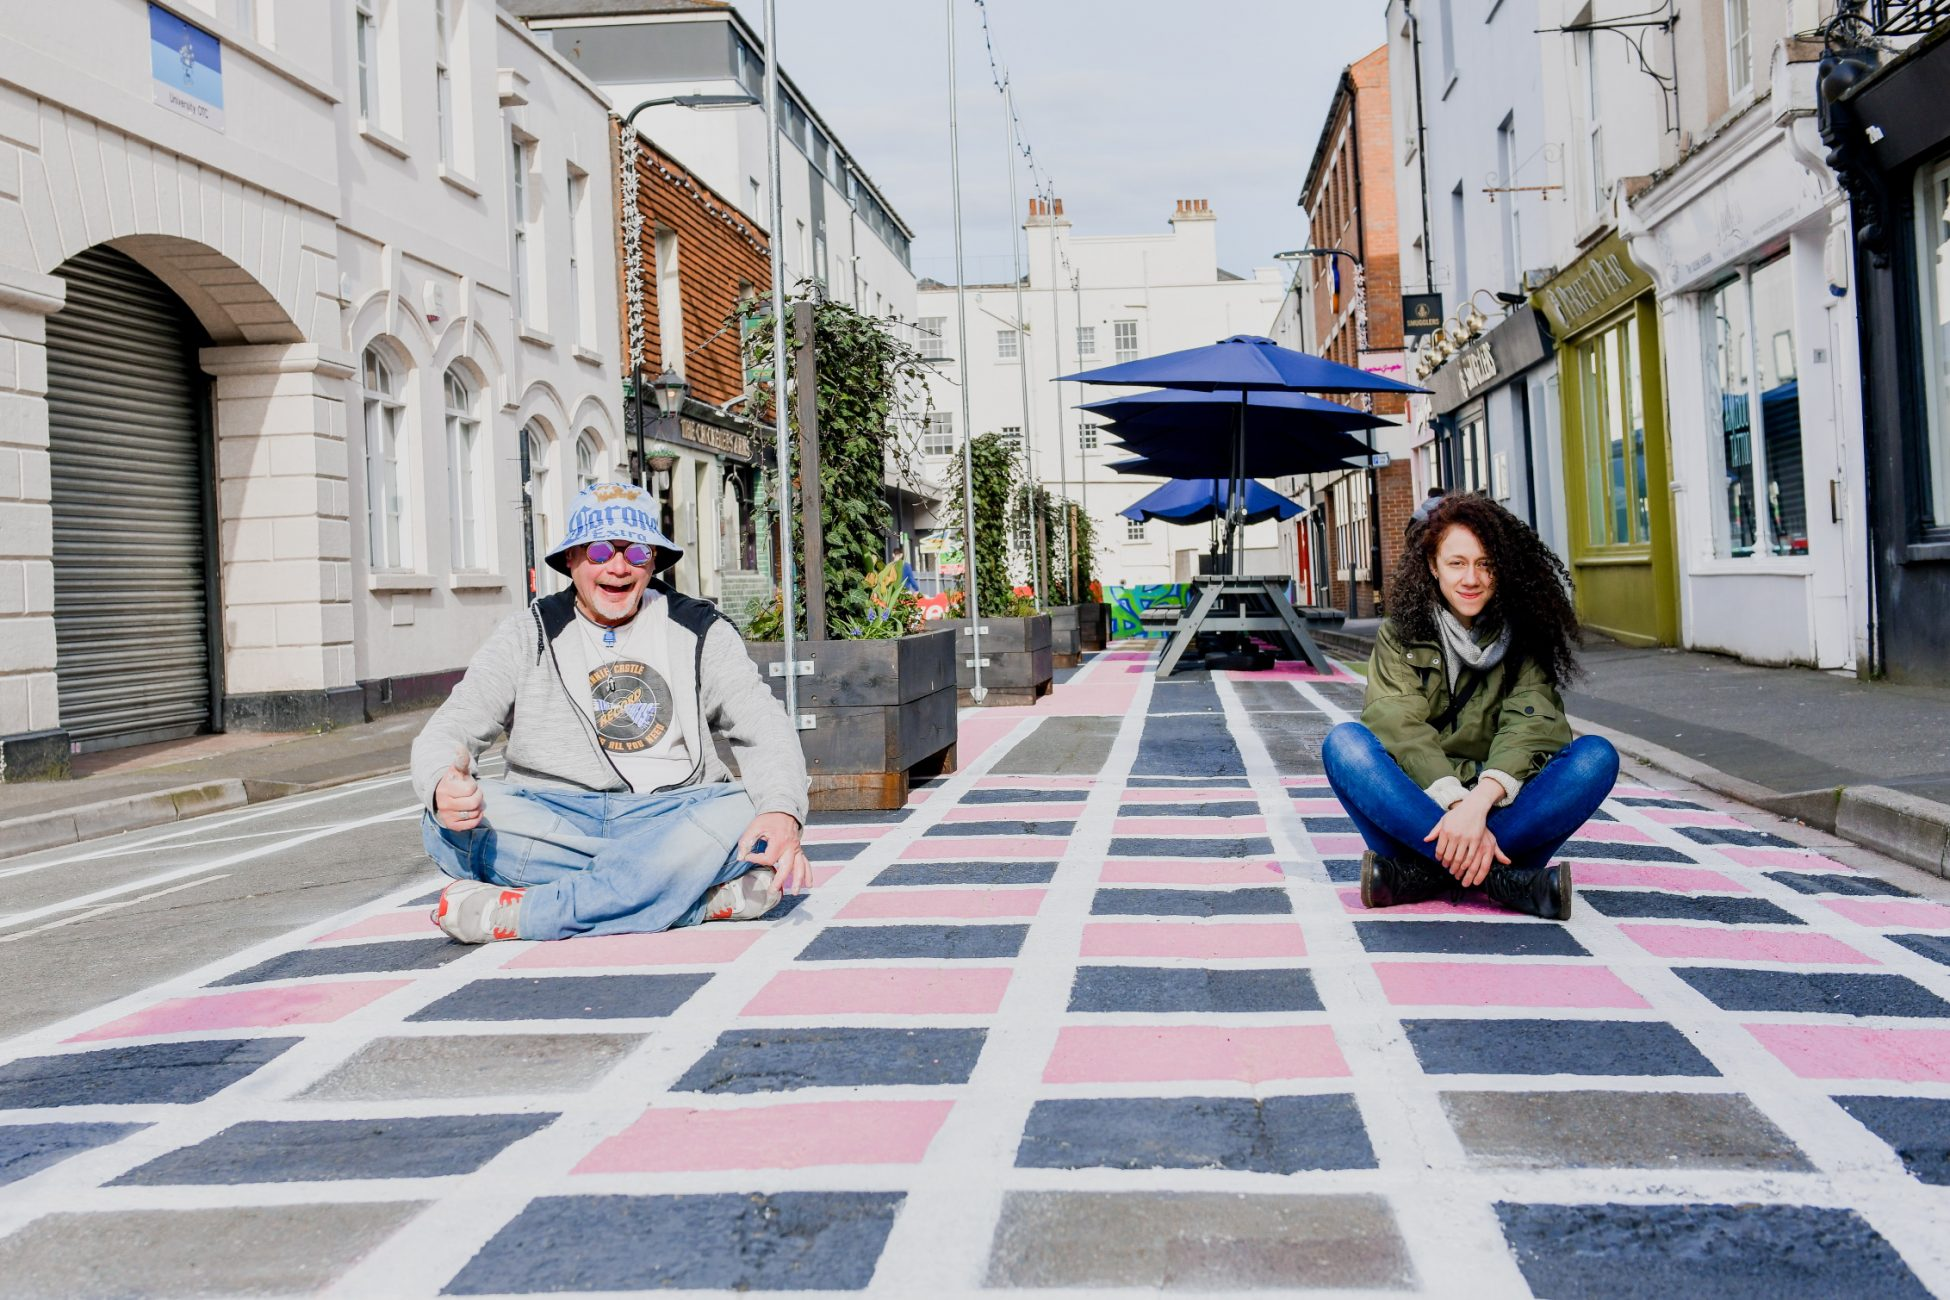 A photo looking straight down a commercial road with shops and businesses on either side. The road has been painted with a geometric grid in white, pink and blue. Sitting on the grid, cross legged are a white man in a hat, hoodie and jeans, and a white woman with brown curly hair, a green jacket and leggings. Behind them are large planter boxes with tall vines and plants, strings of fairy lights, and picnic benches with large blue umbrellas over them.